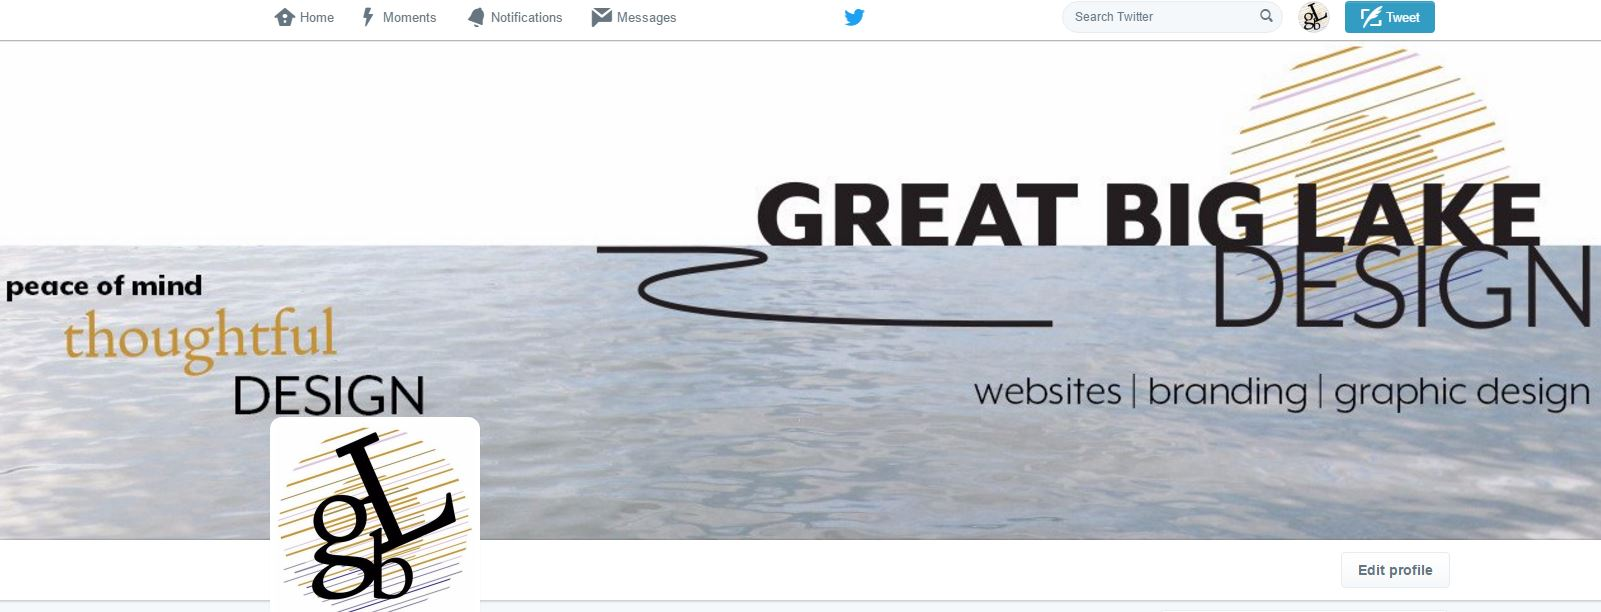 Twitter Great Big Lake Design Profile Picture and Header Image